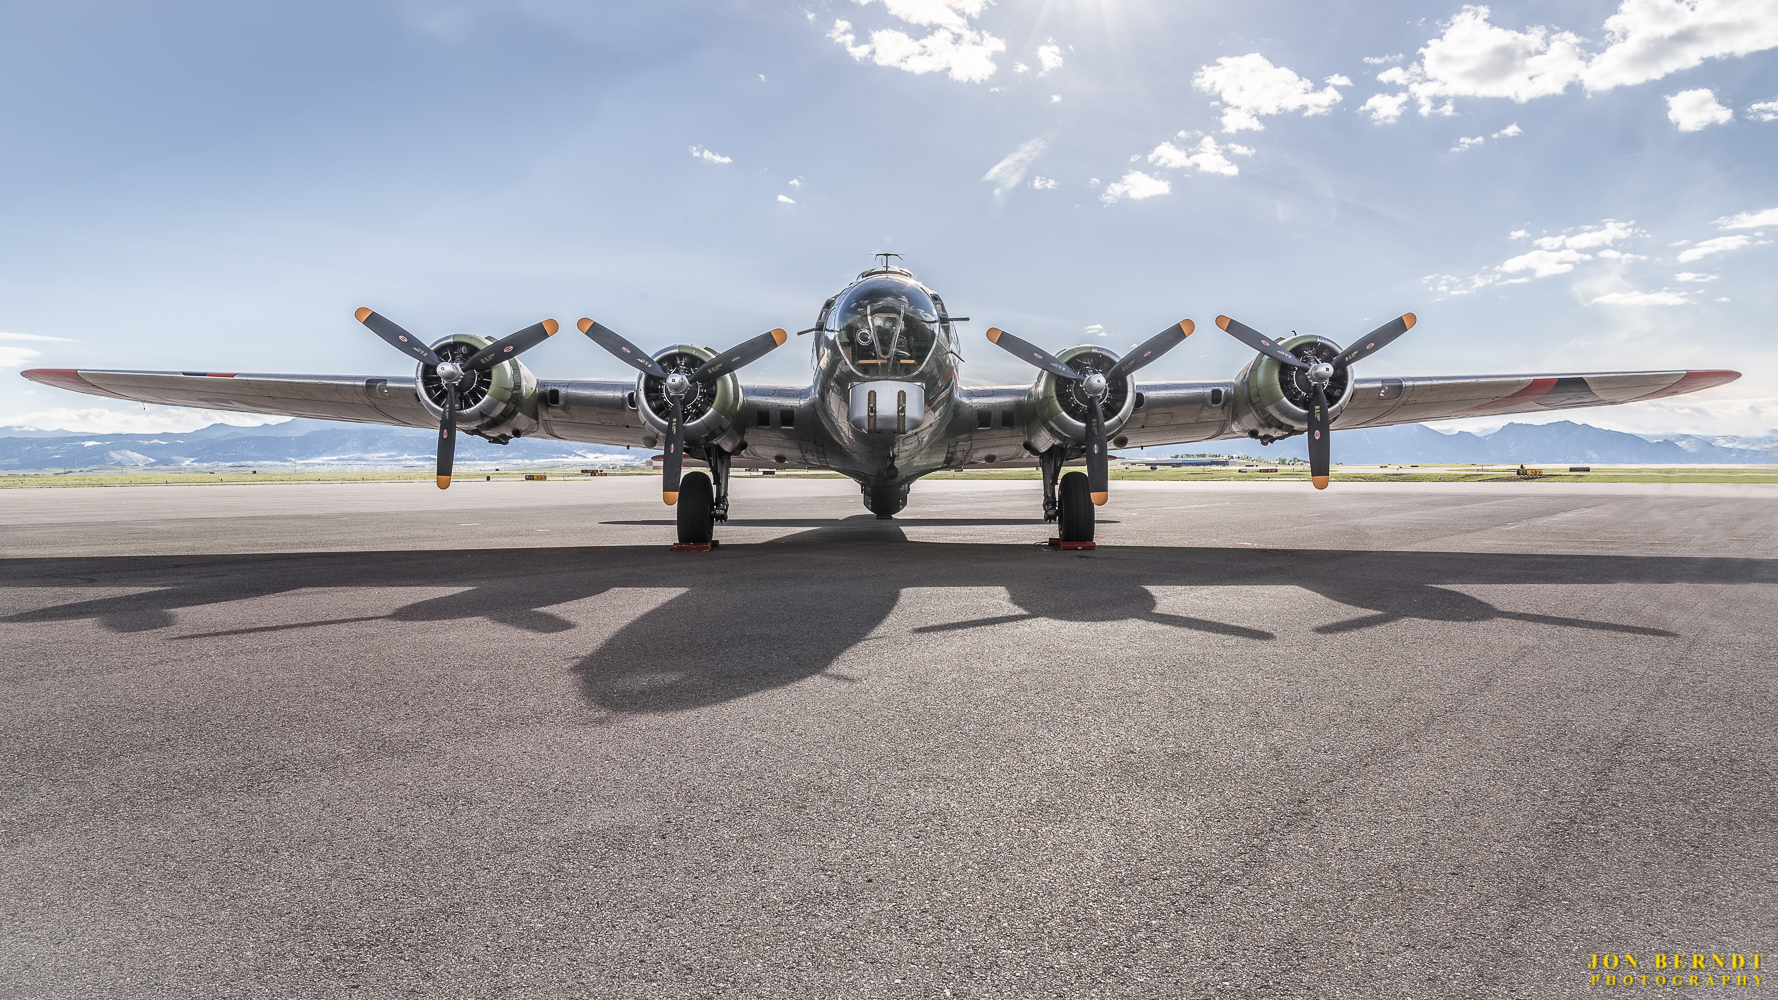 """B-17G """"Madras Maiden"""", head on. The lighting and shadows worked well for this shot on the runway."""